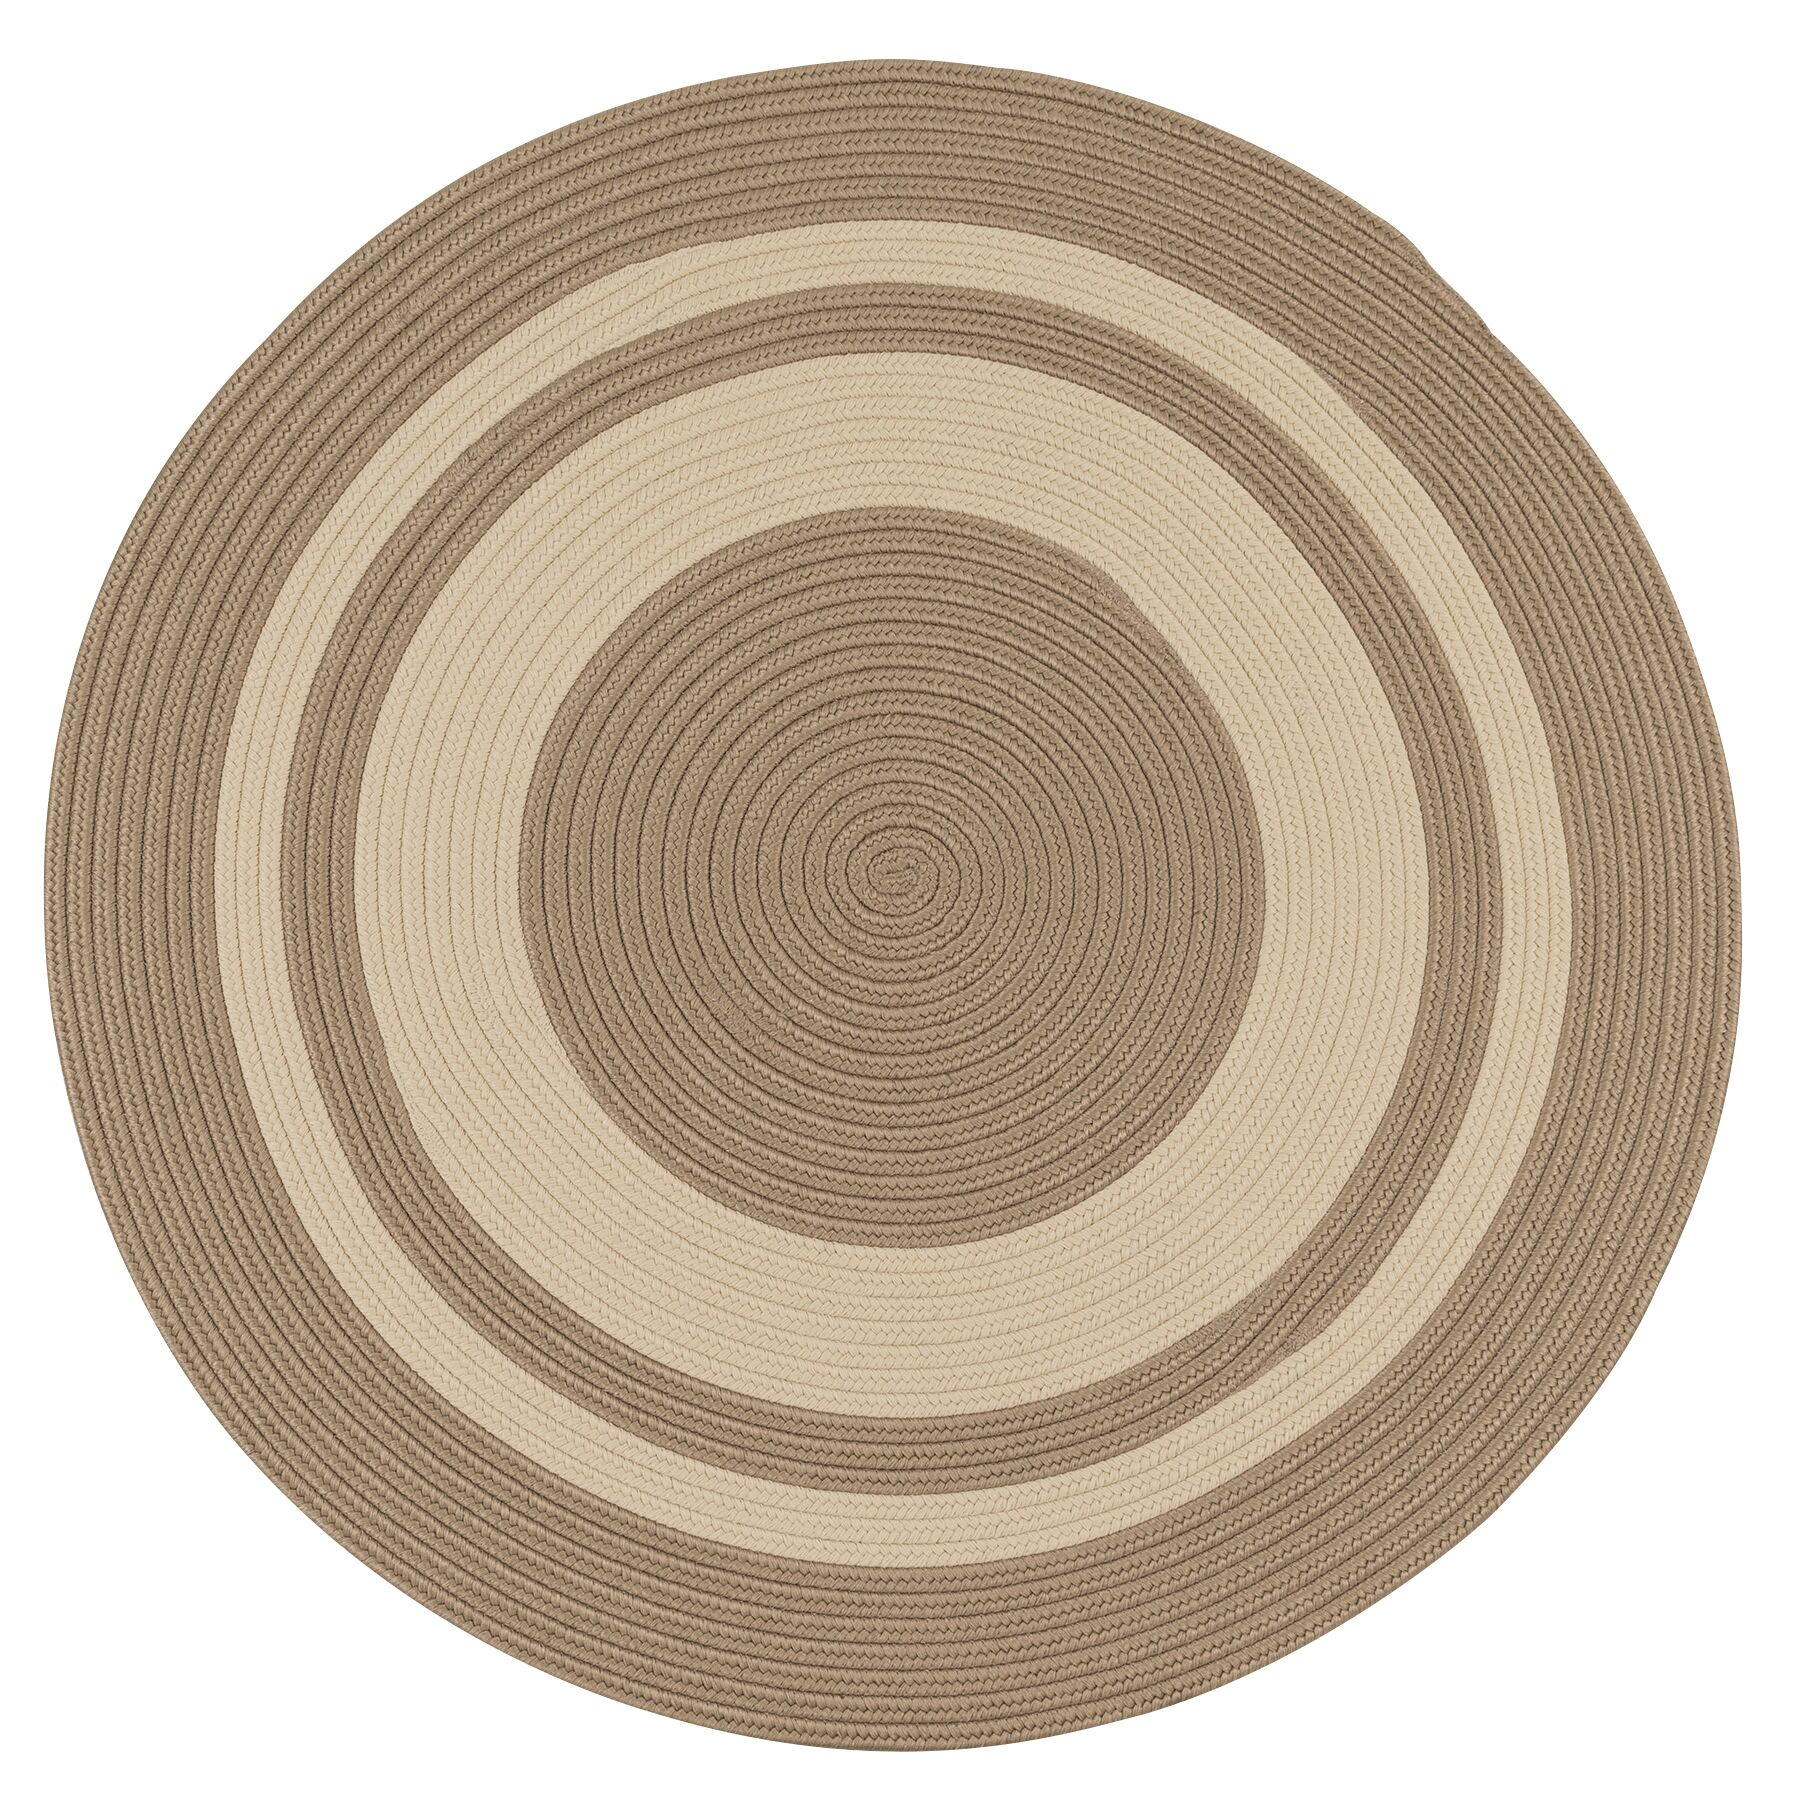 Don Hand-Braided Brown/Beige Indoor/Outdoor Area Rug Rug Size: Round 11'